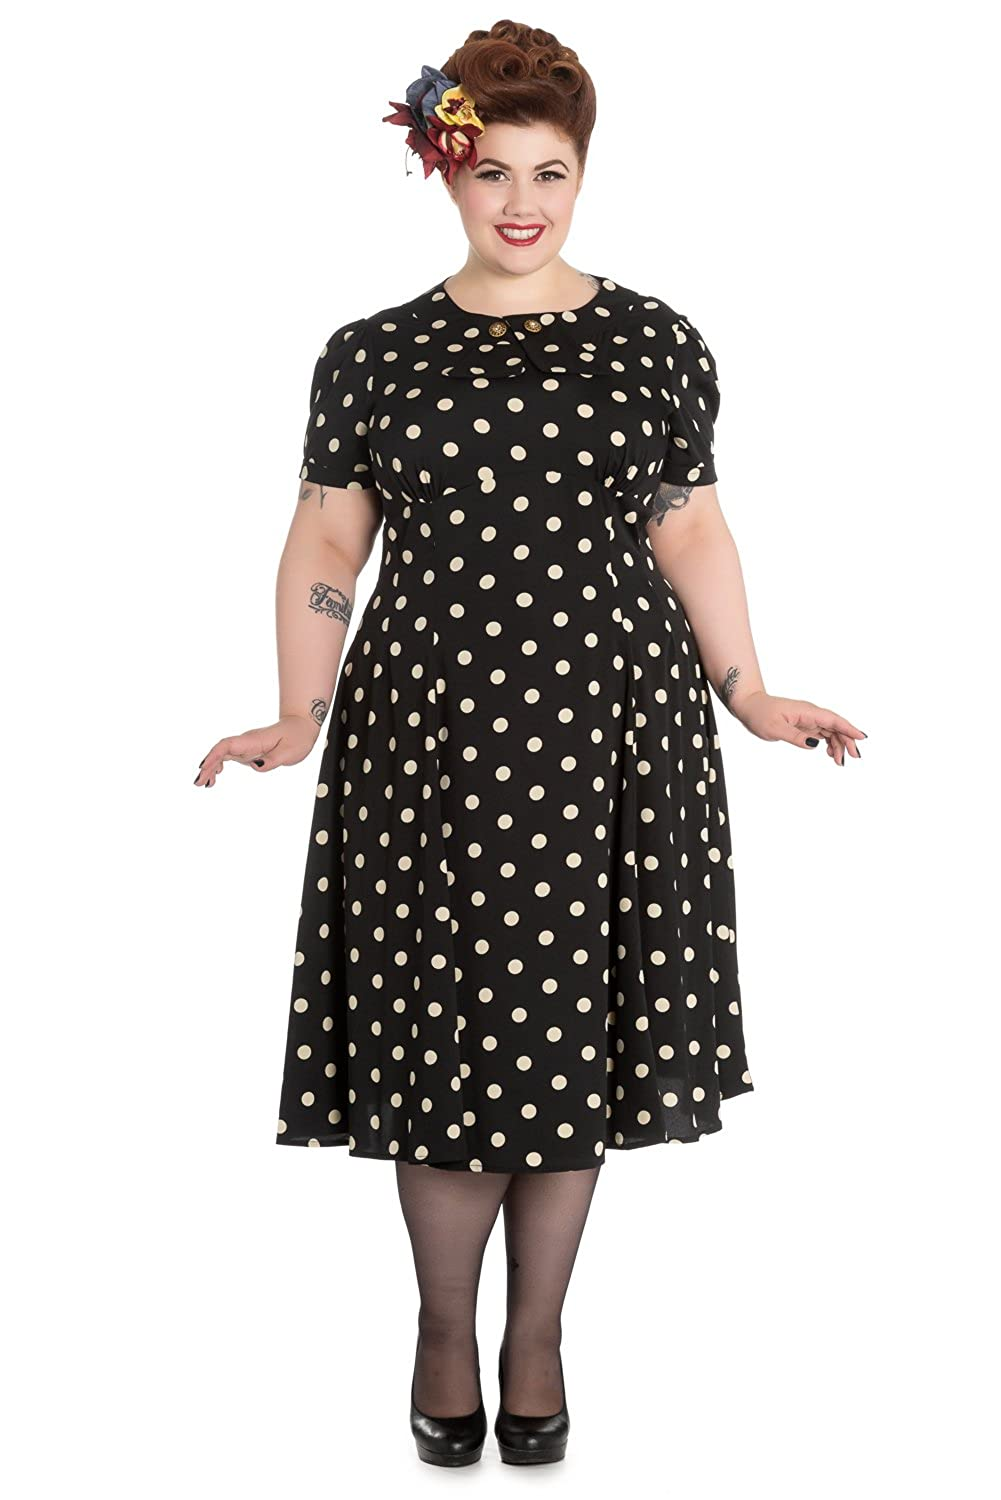 1930s Style Fashion Dresses Hell Bunny Plus Size Sweet Office Lady Black Mod Polka Dot Dress $72.00 AT vintagedancer.com